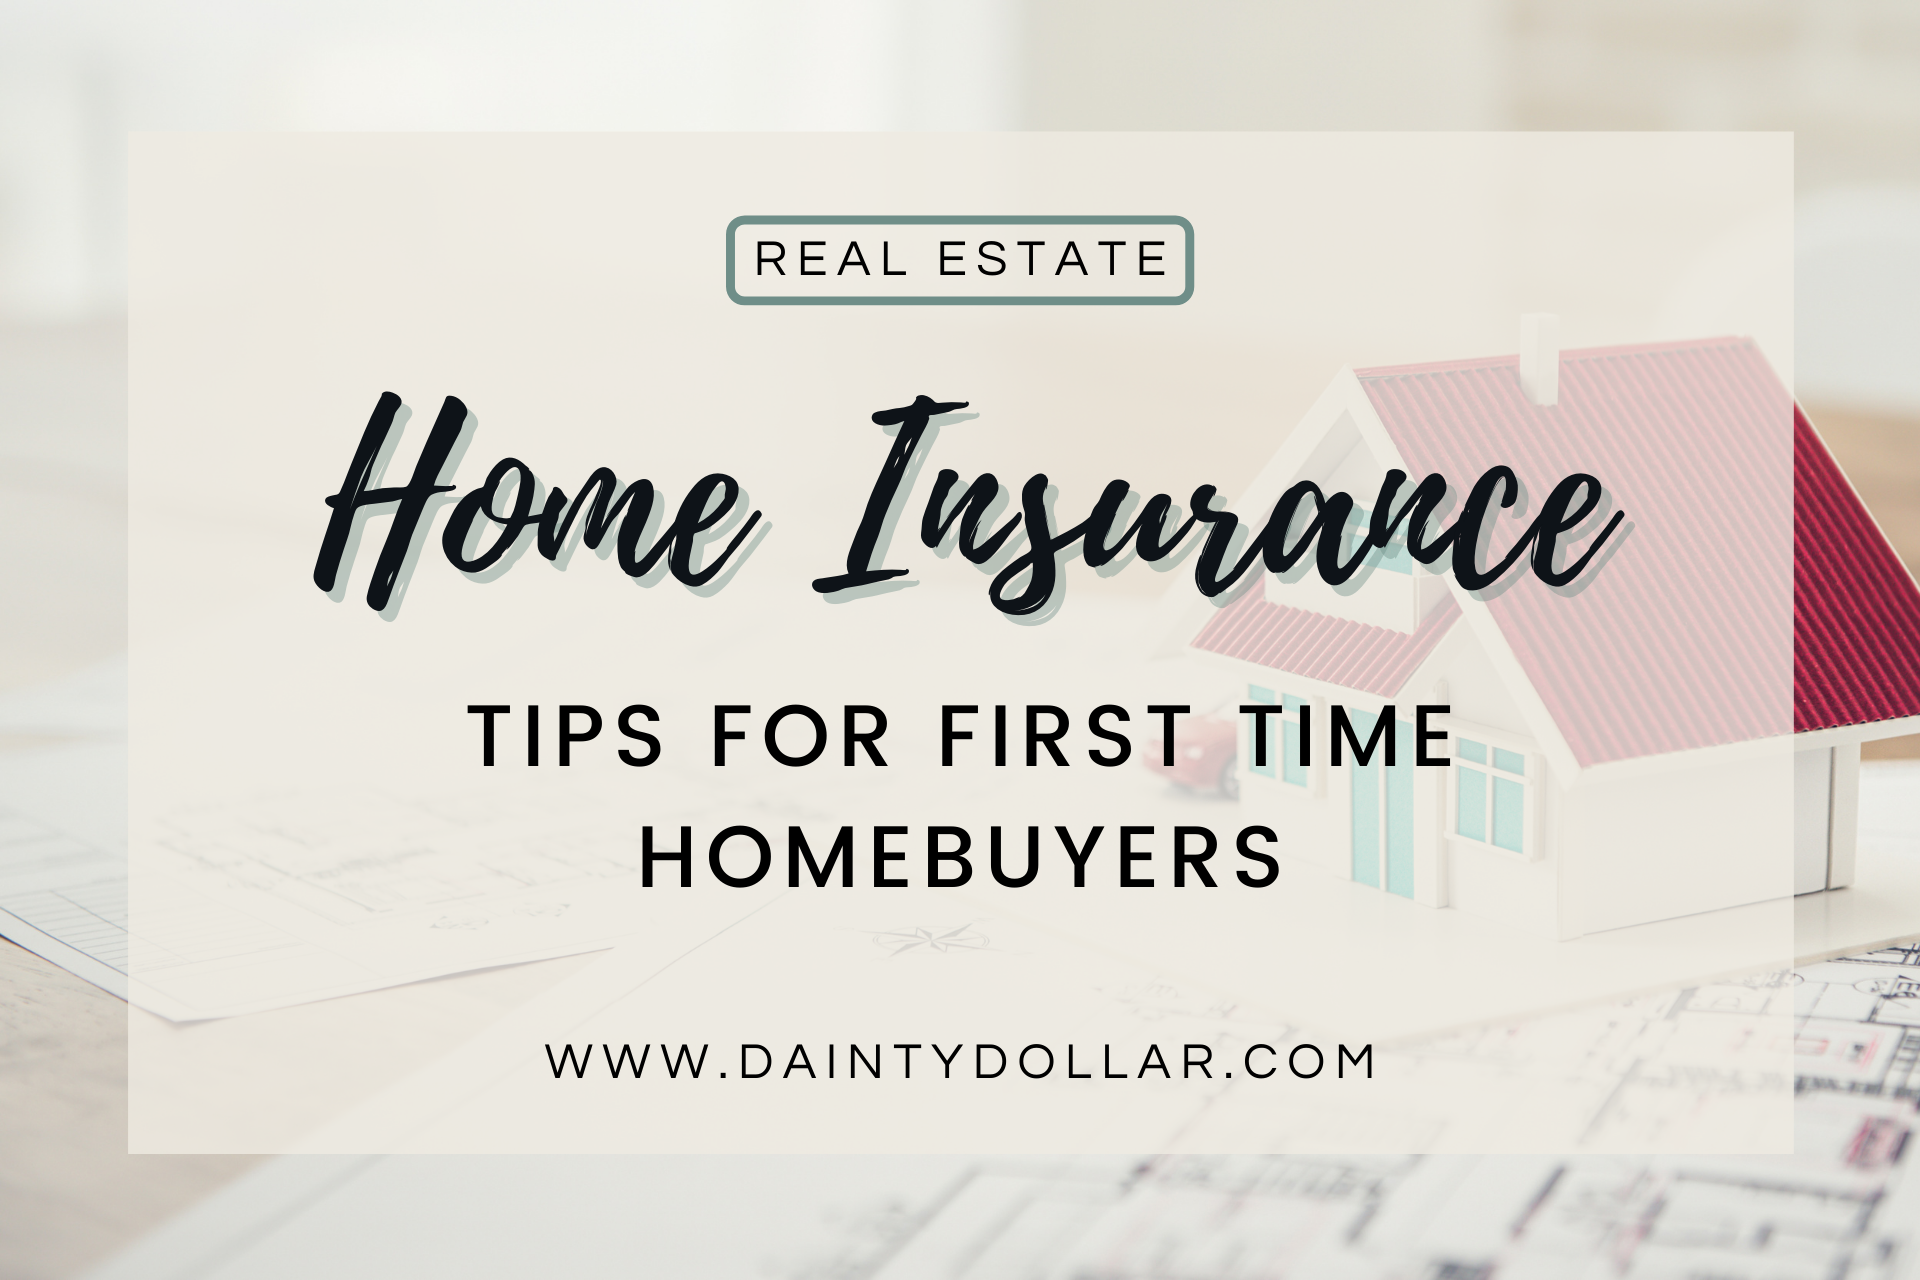 Home Insurance Tips for First Time Homebuyers - Dainty Dollar